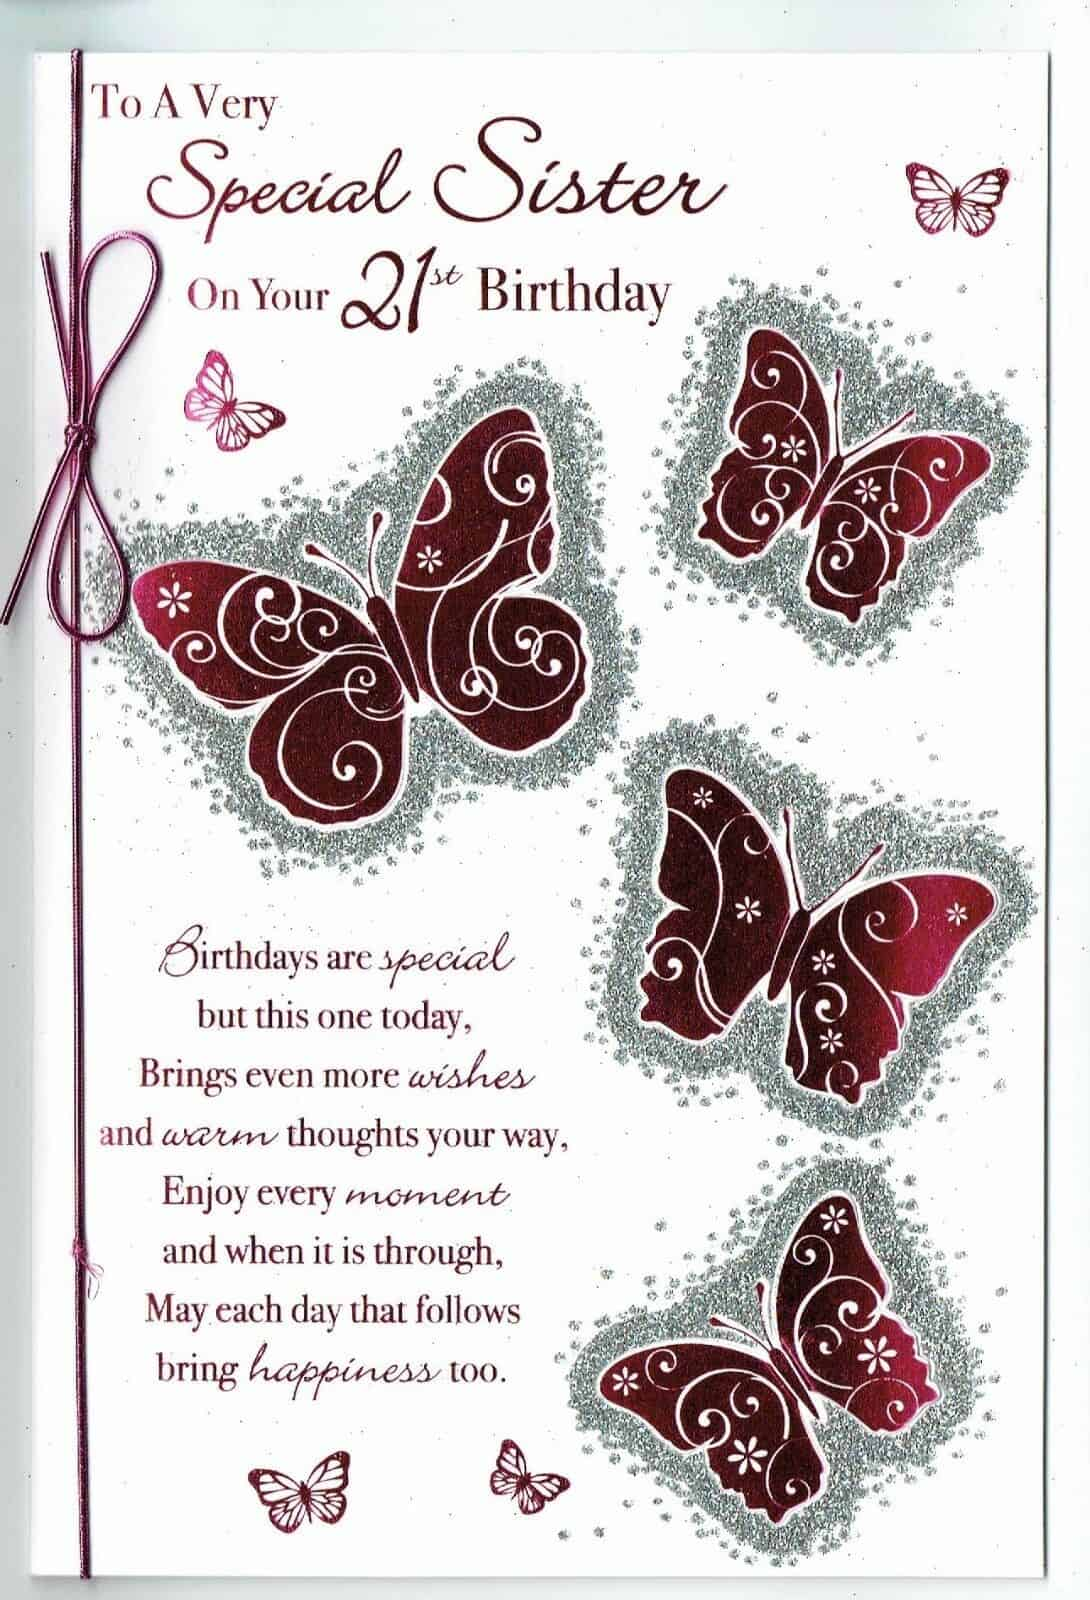 Sister Birthday Card 21st With Butterflies And Sentiment